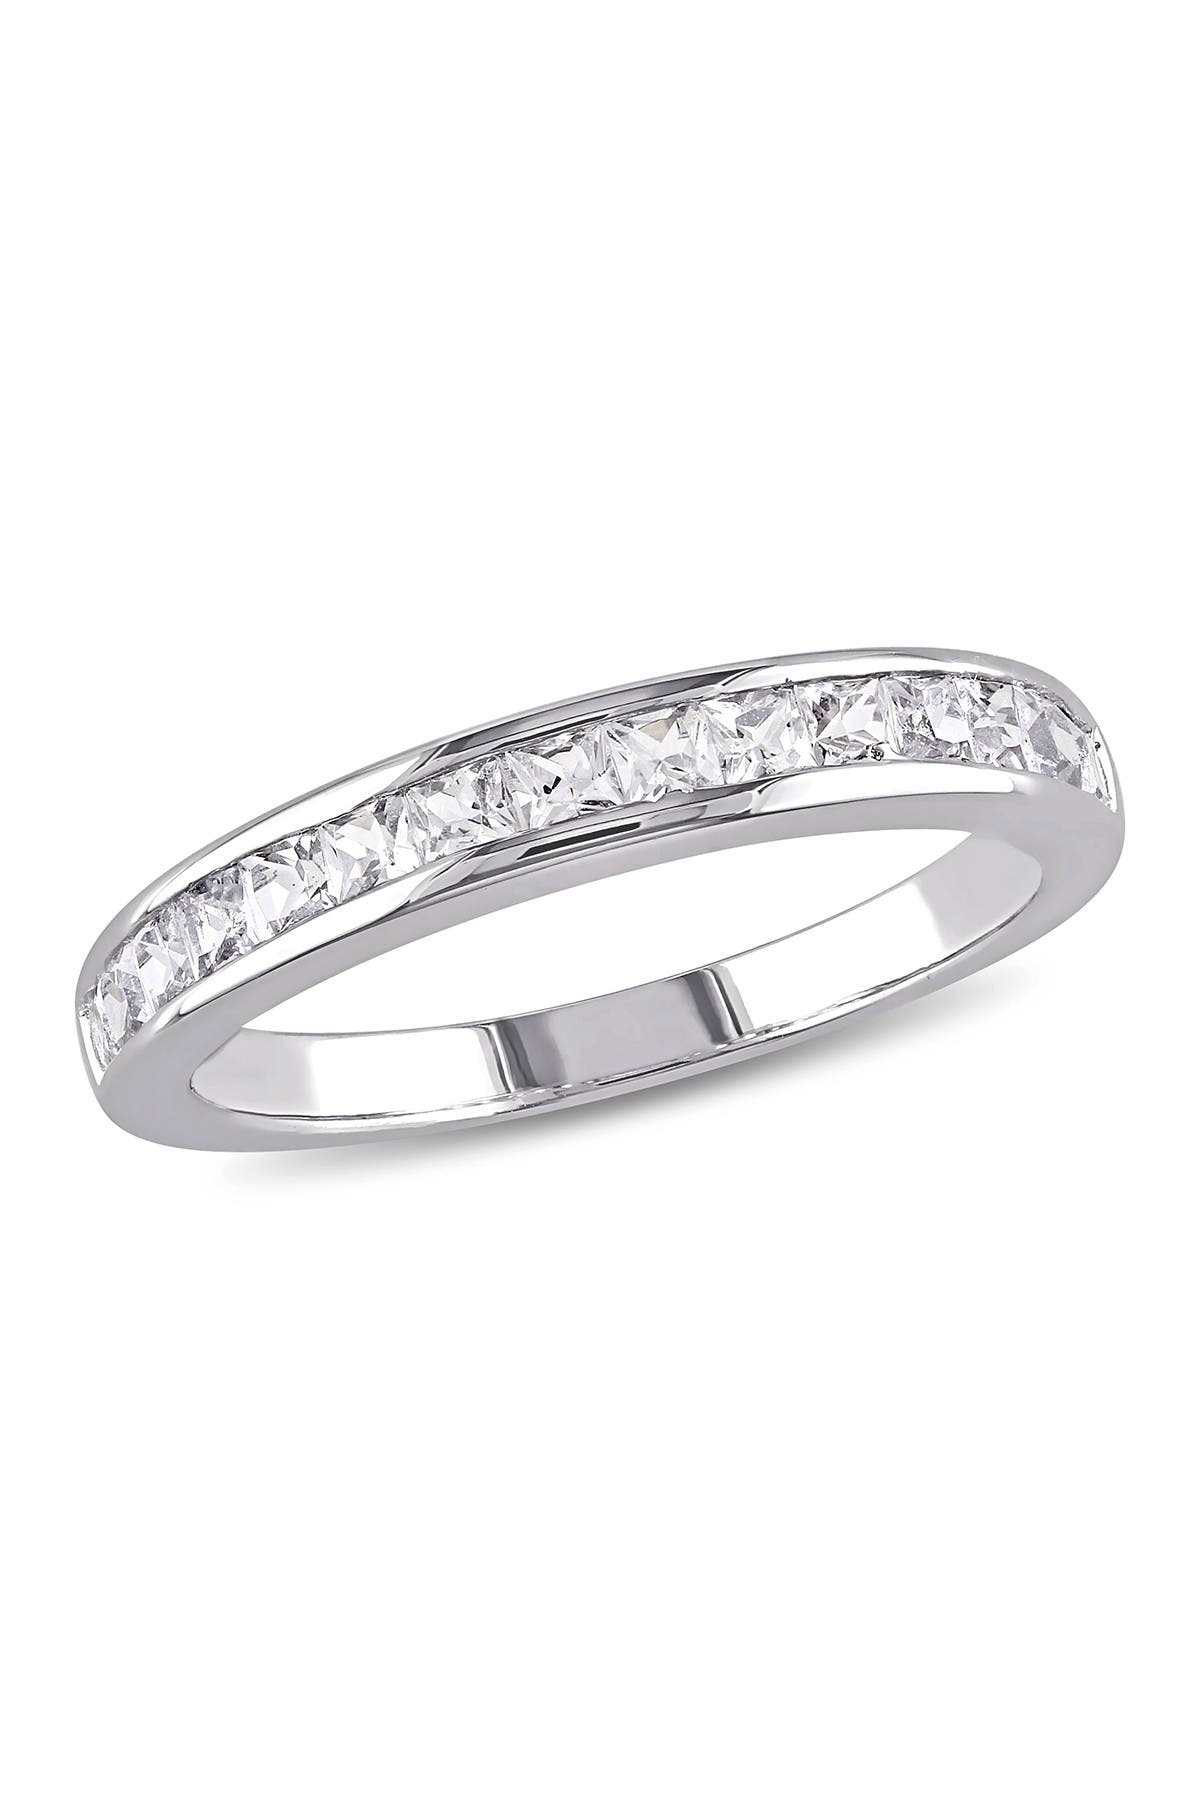 Image of Delmar Sterling Silver Created White Sapphire Eternity Ring